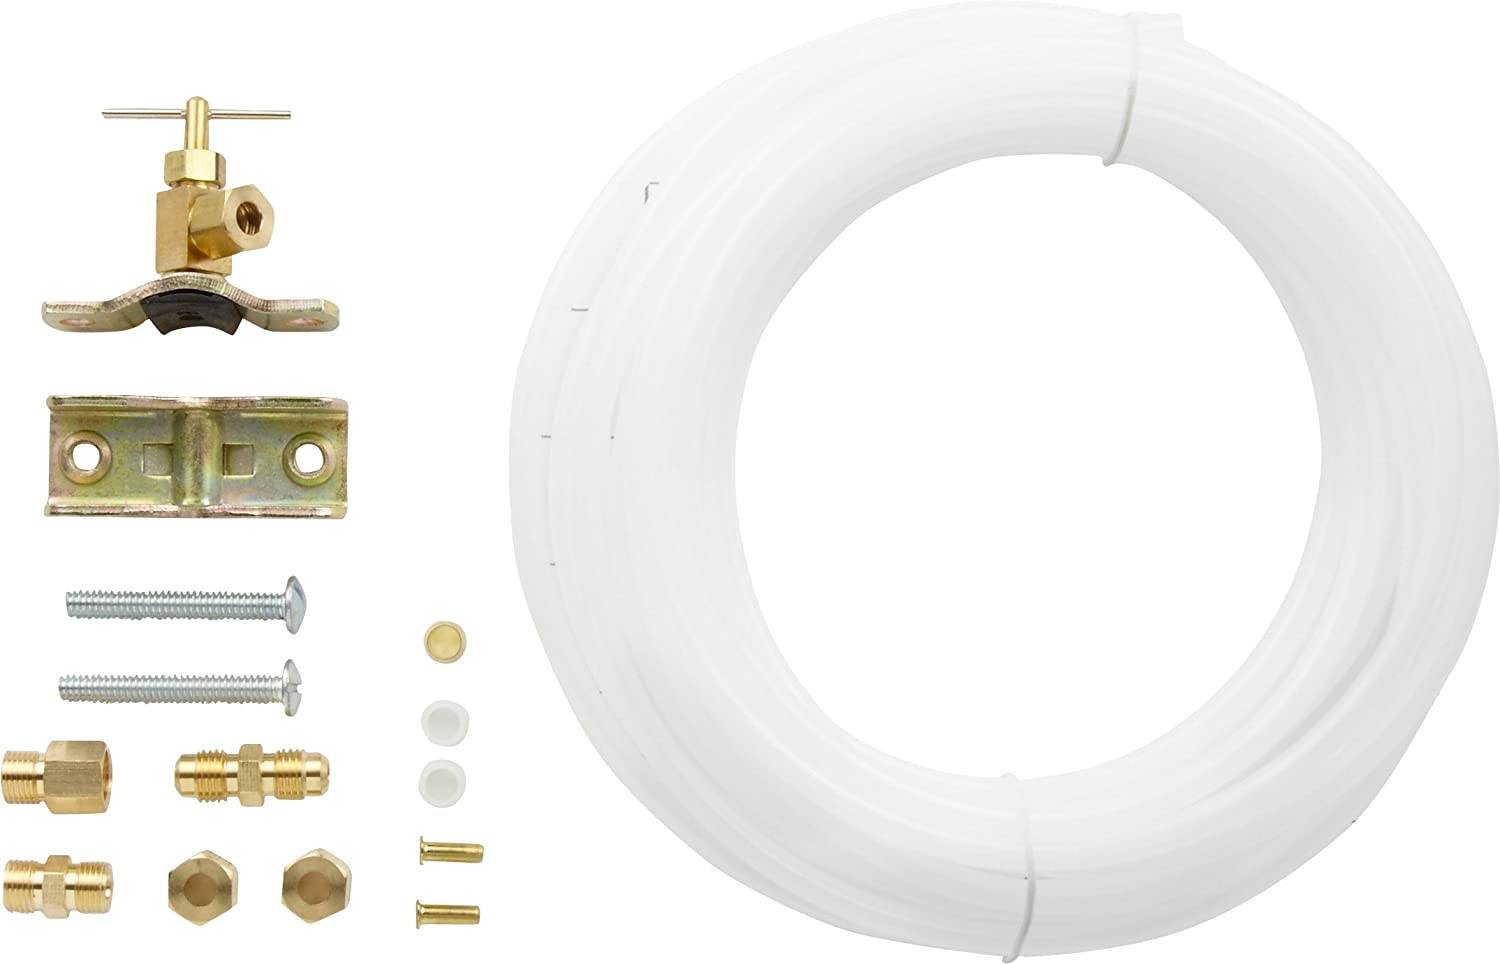 Supco PT25 Ice Maker Kit With Self Tapping Valve For IST3, TJ9PIMKIT25, AP4494524, 25002612 (1-Pack)